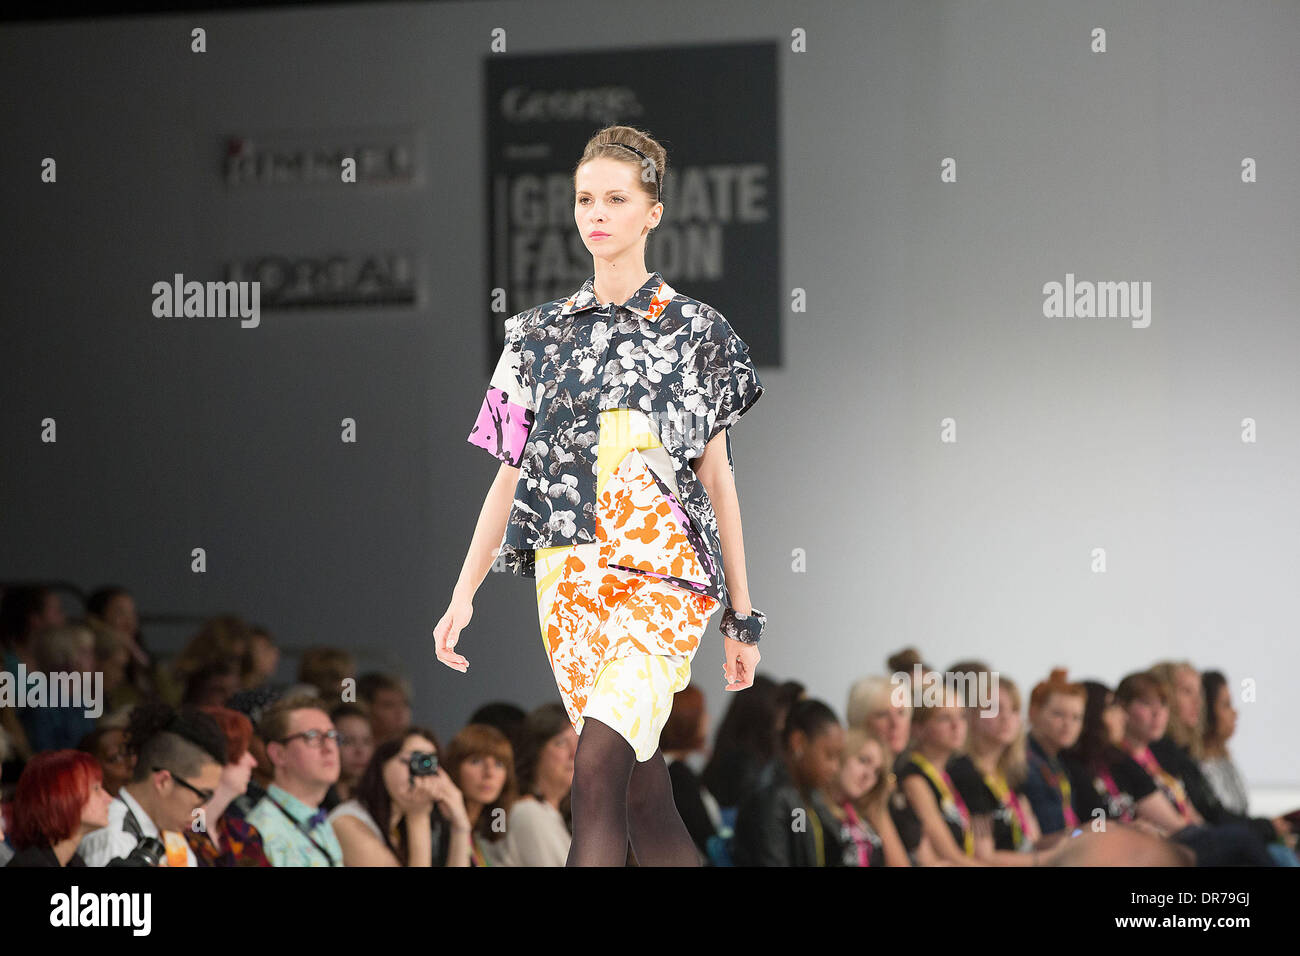 Model The Nottingham Trent University Fashion Show At Graduate Stock Photo 65929378 Alamy